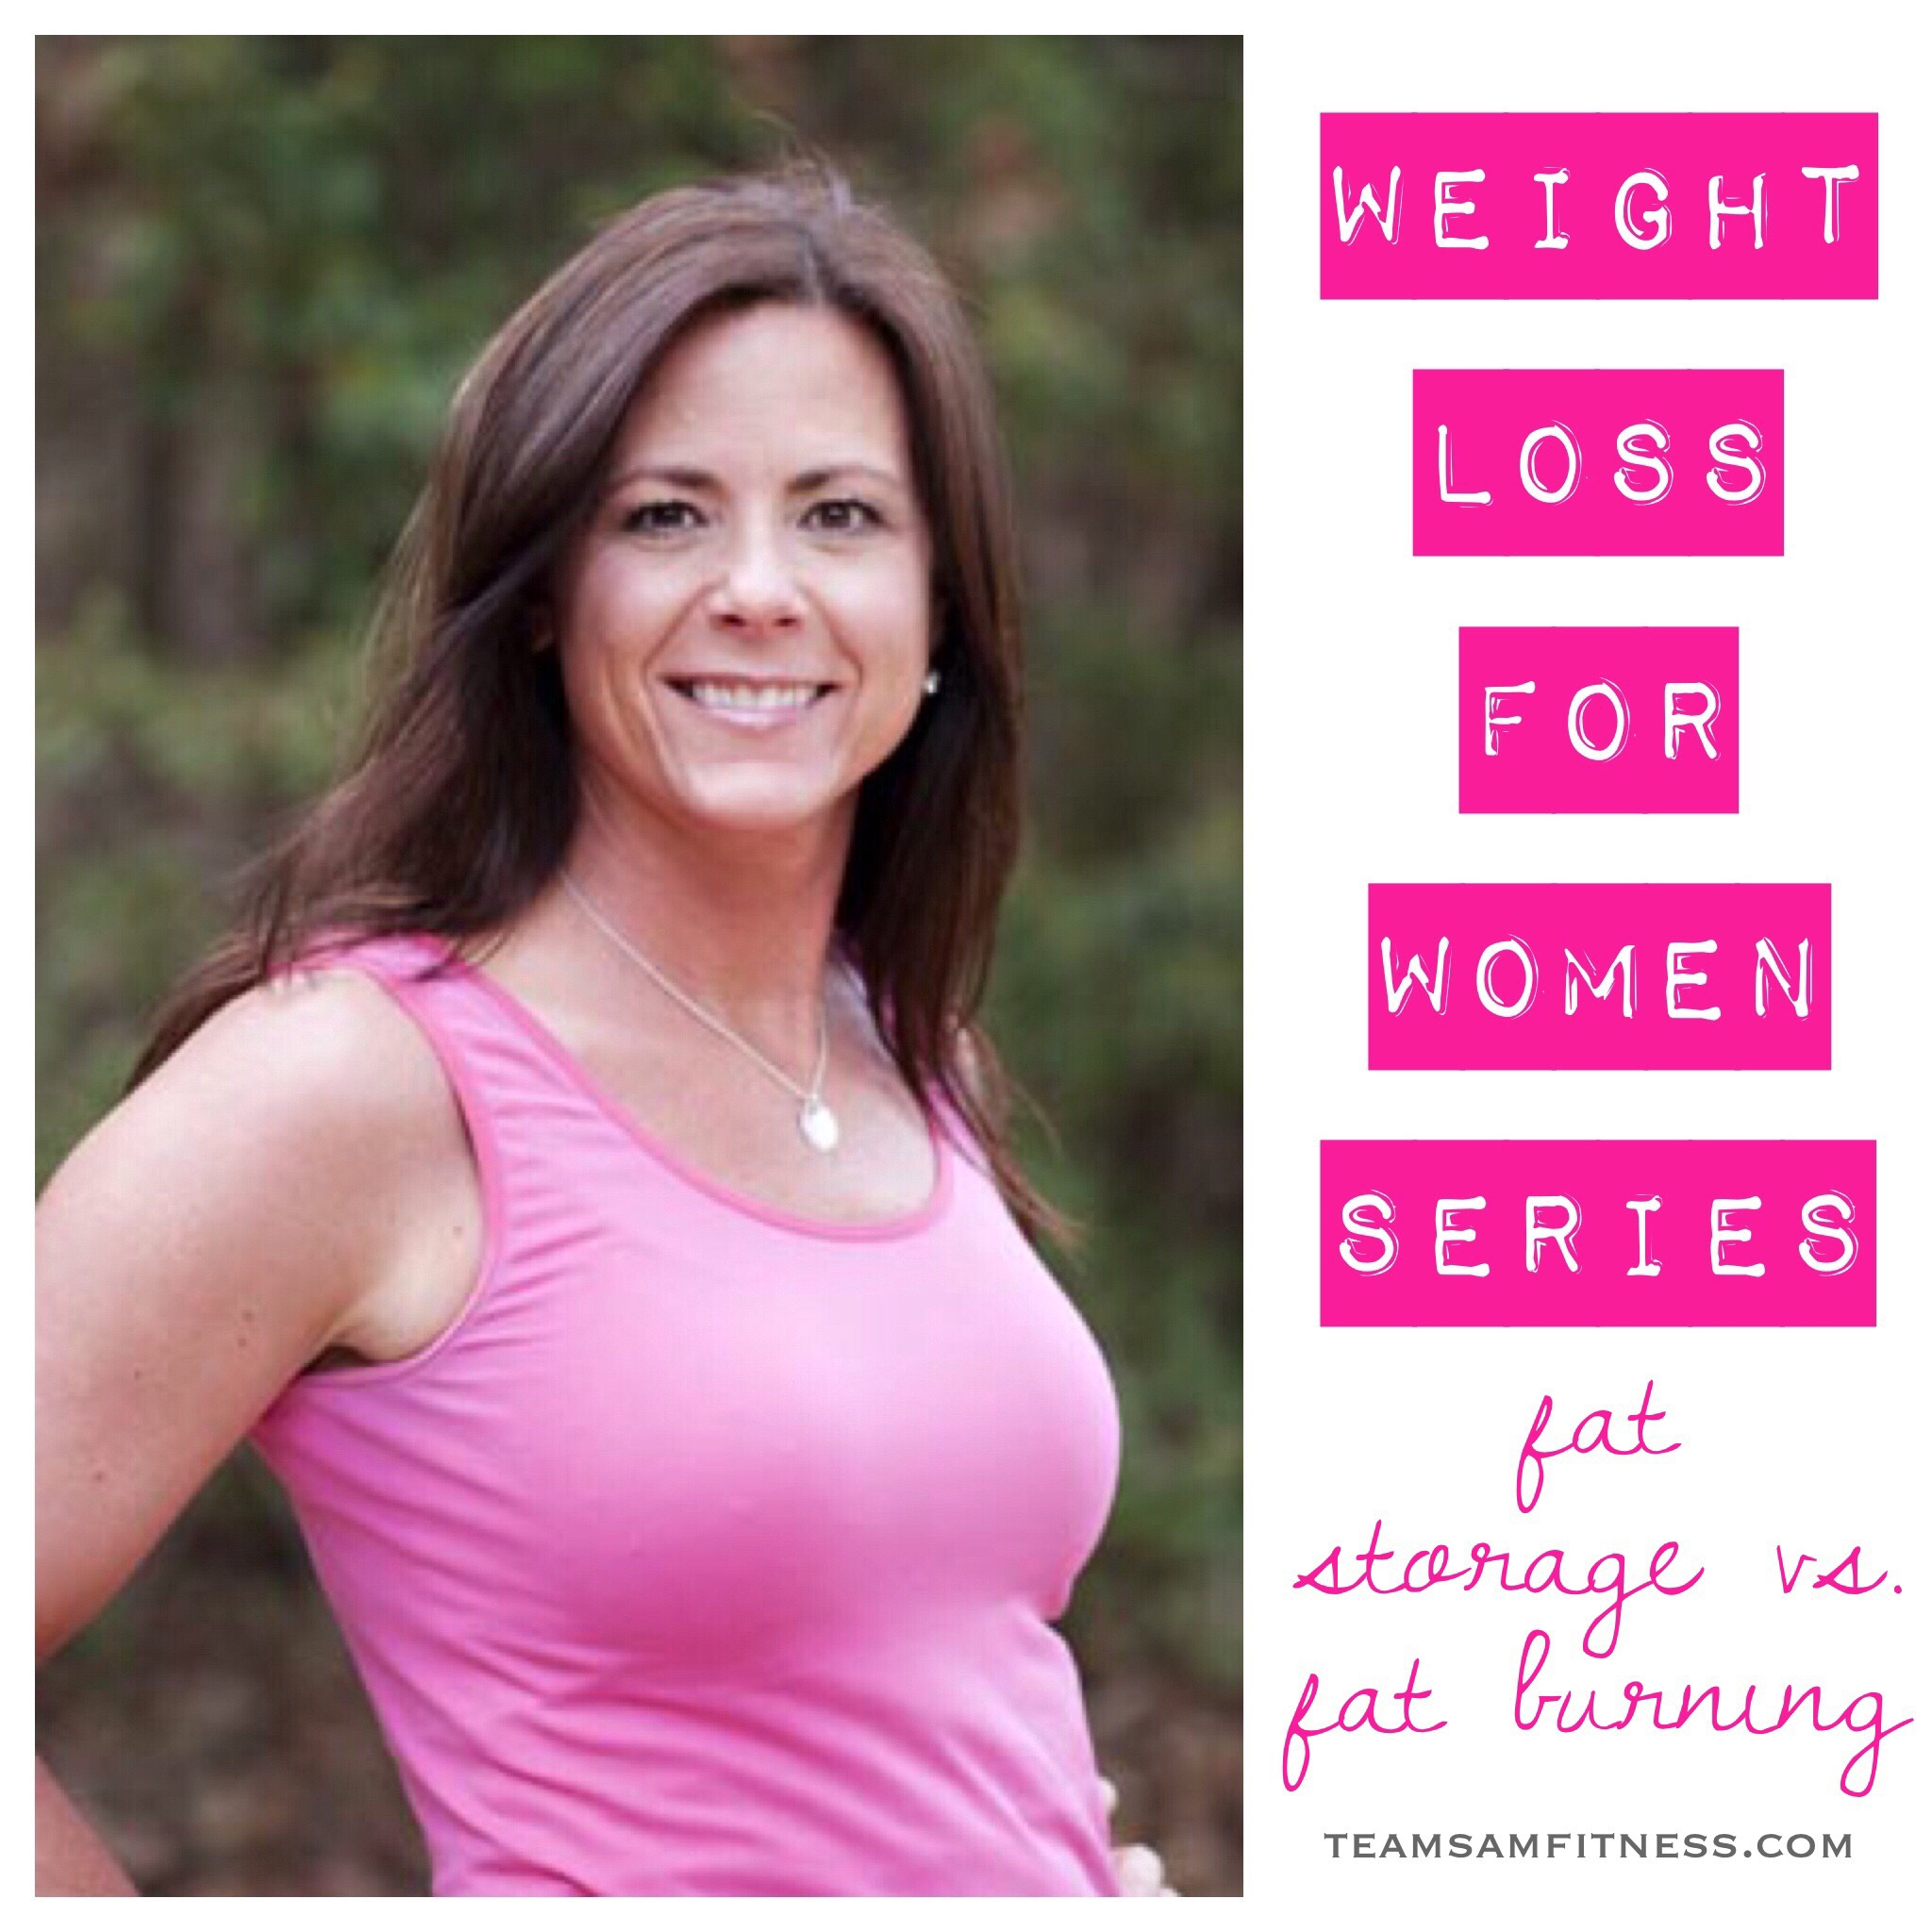 Weight Loss for Women Series Part 1 Are you Fat Burning or Fat Storing?